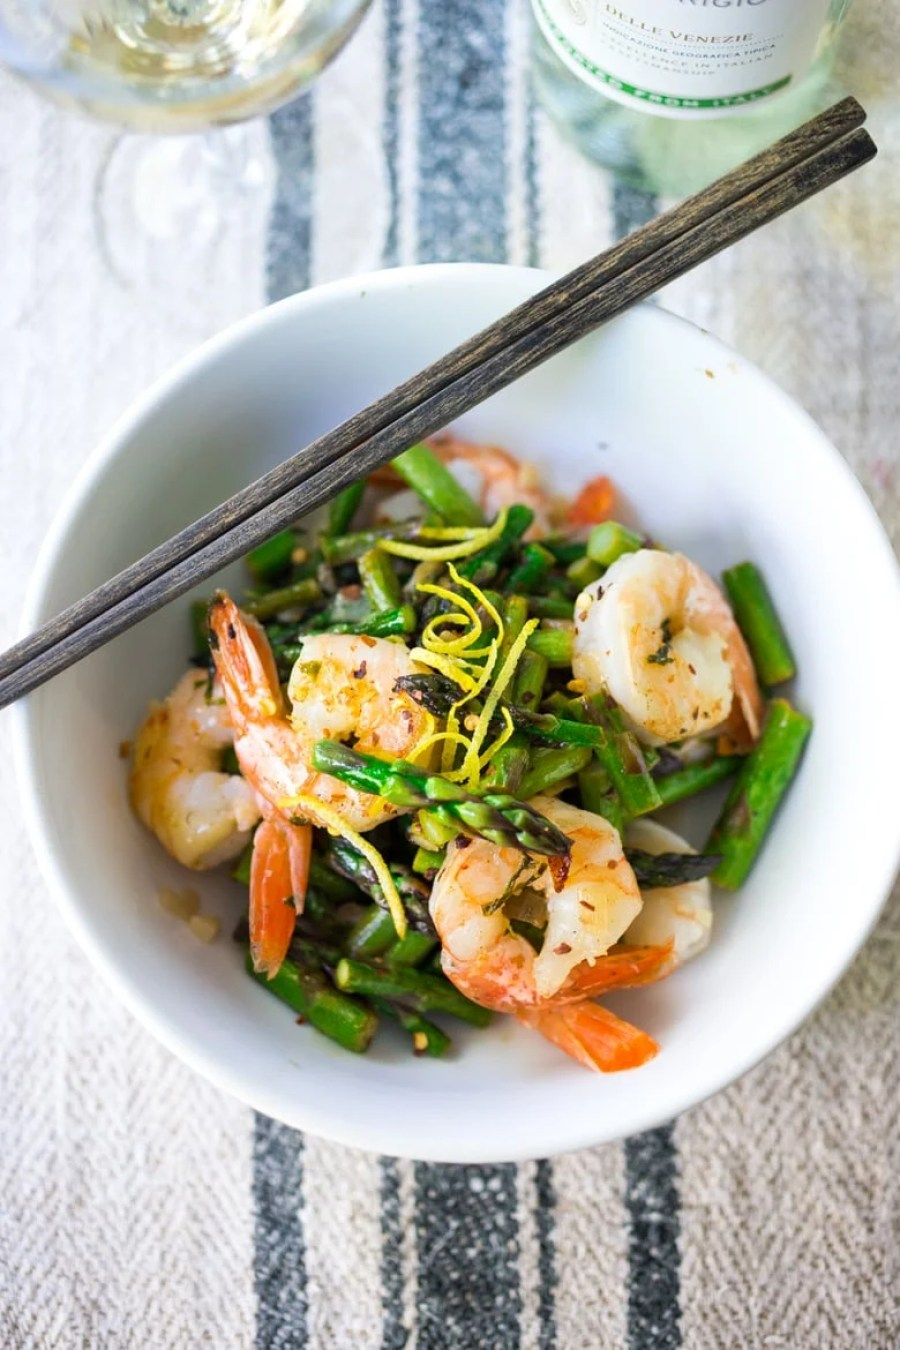 EAT CLEAN with these 20 simple Plant-Based Meals!!!   Asparagus & Shrimp with lemon and basil - make in 15 minutes!   www.feastingathome.com